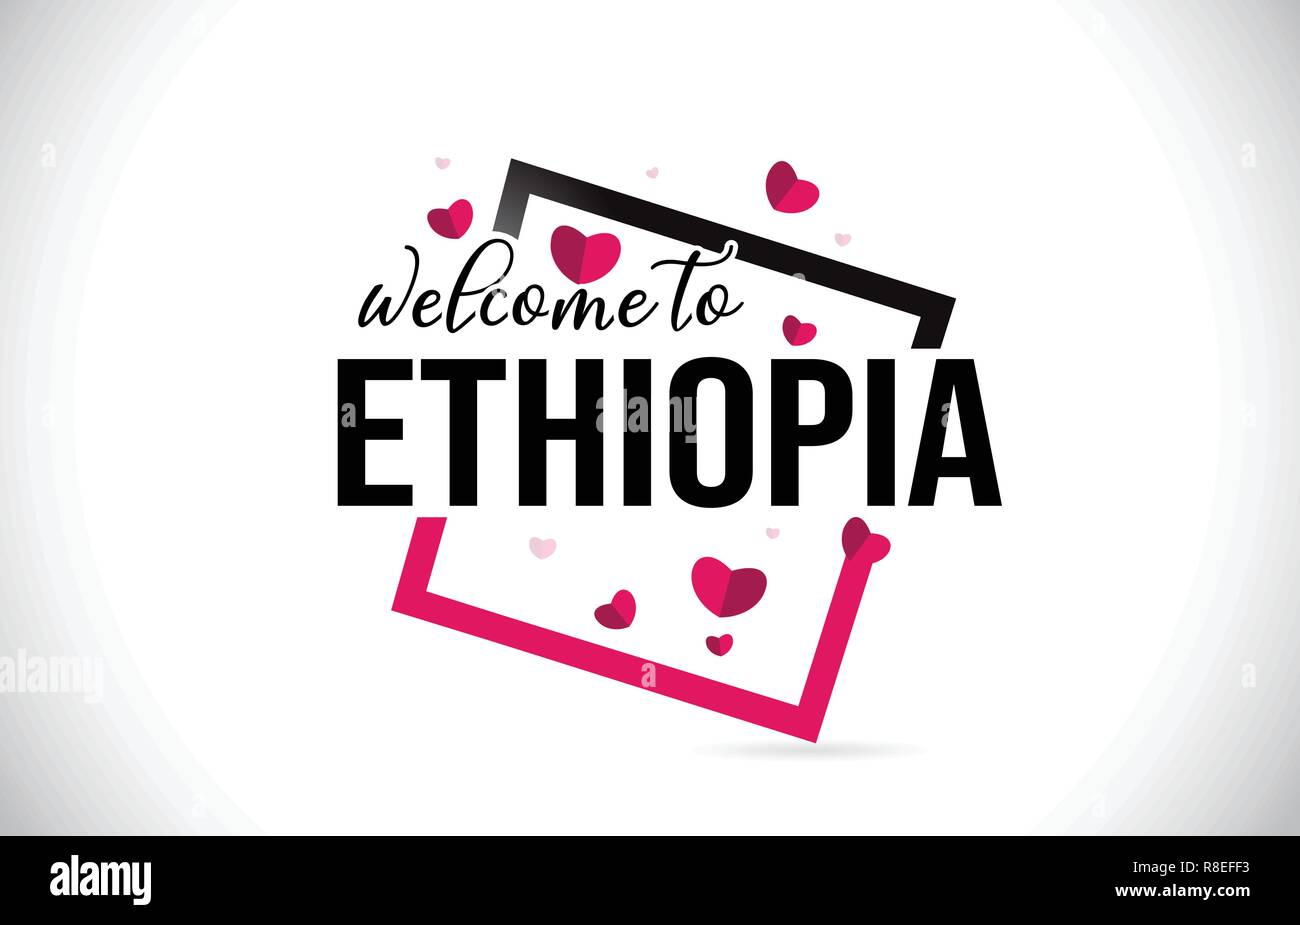 Ethiopia Welcome To Word Text with Handwritten Font and  Red Hearts Square Design Illustration Vector. - Stock Vector